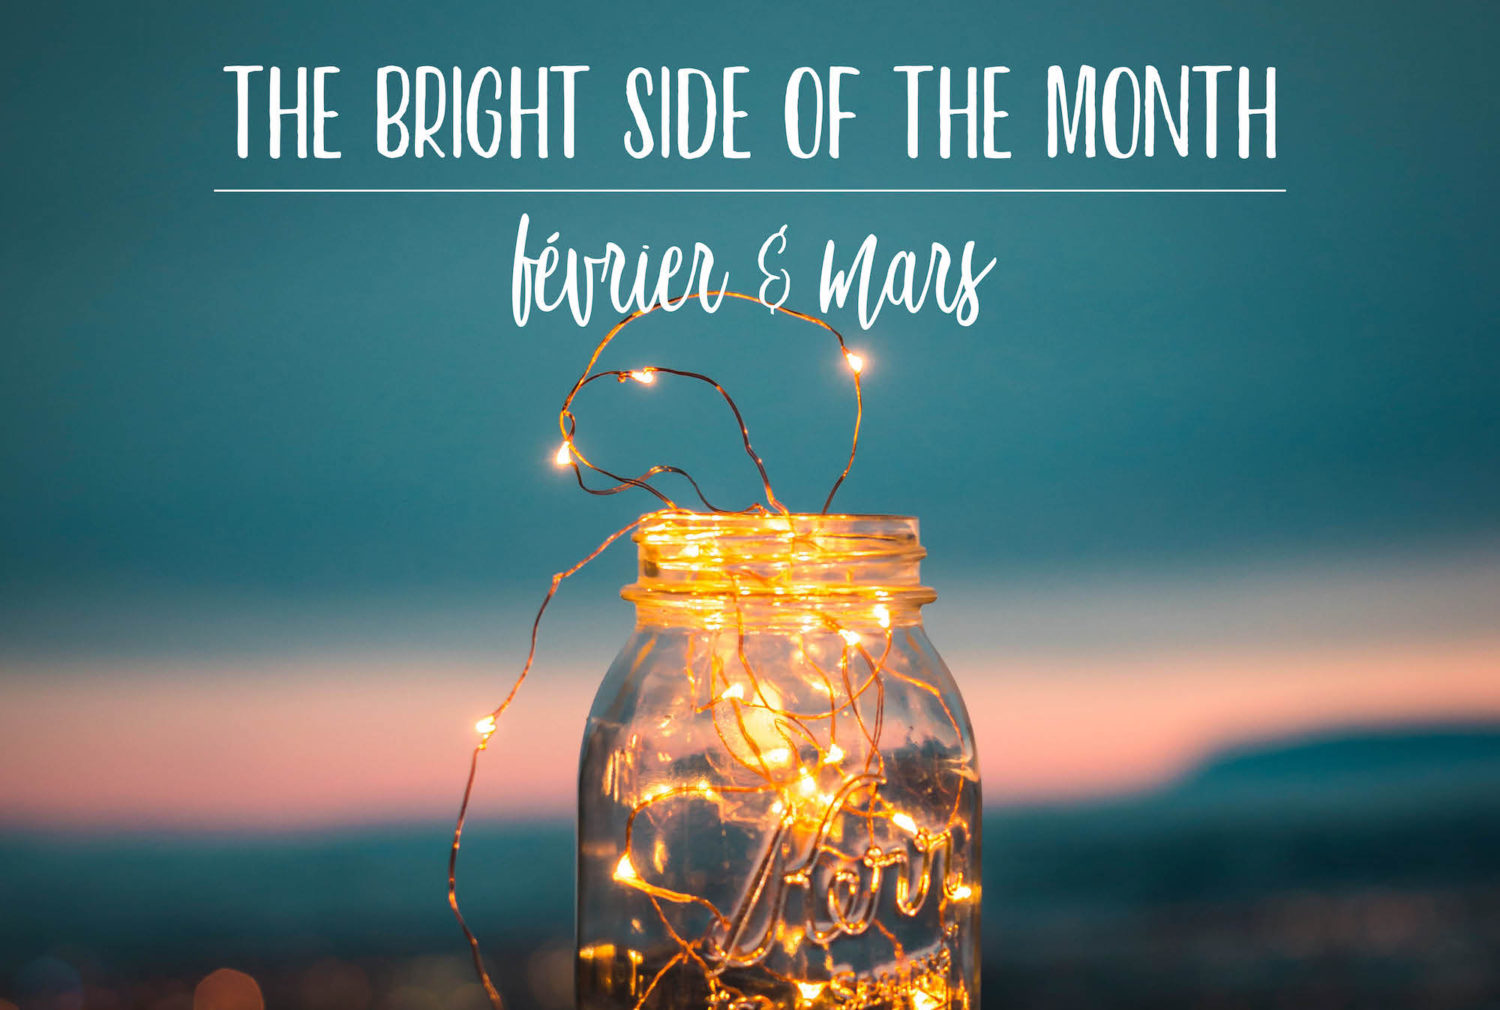 The Bright Side of the month – FÉVRIER & MARS 2018